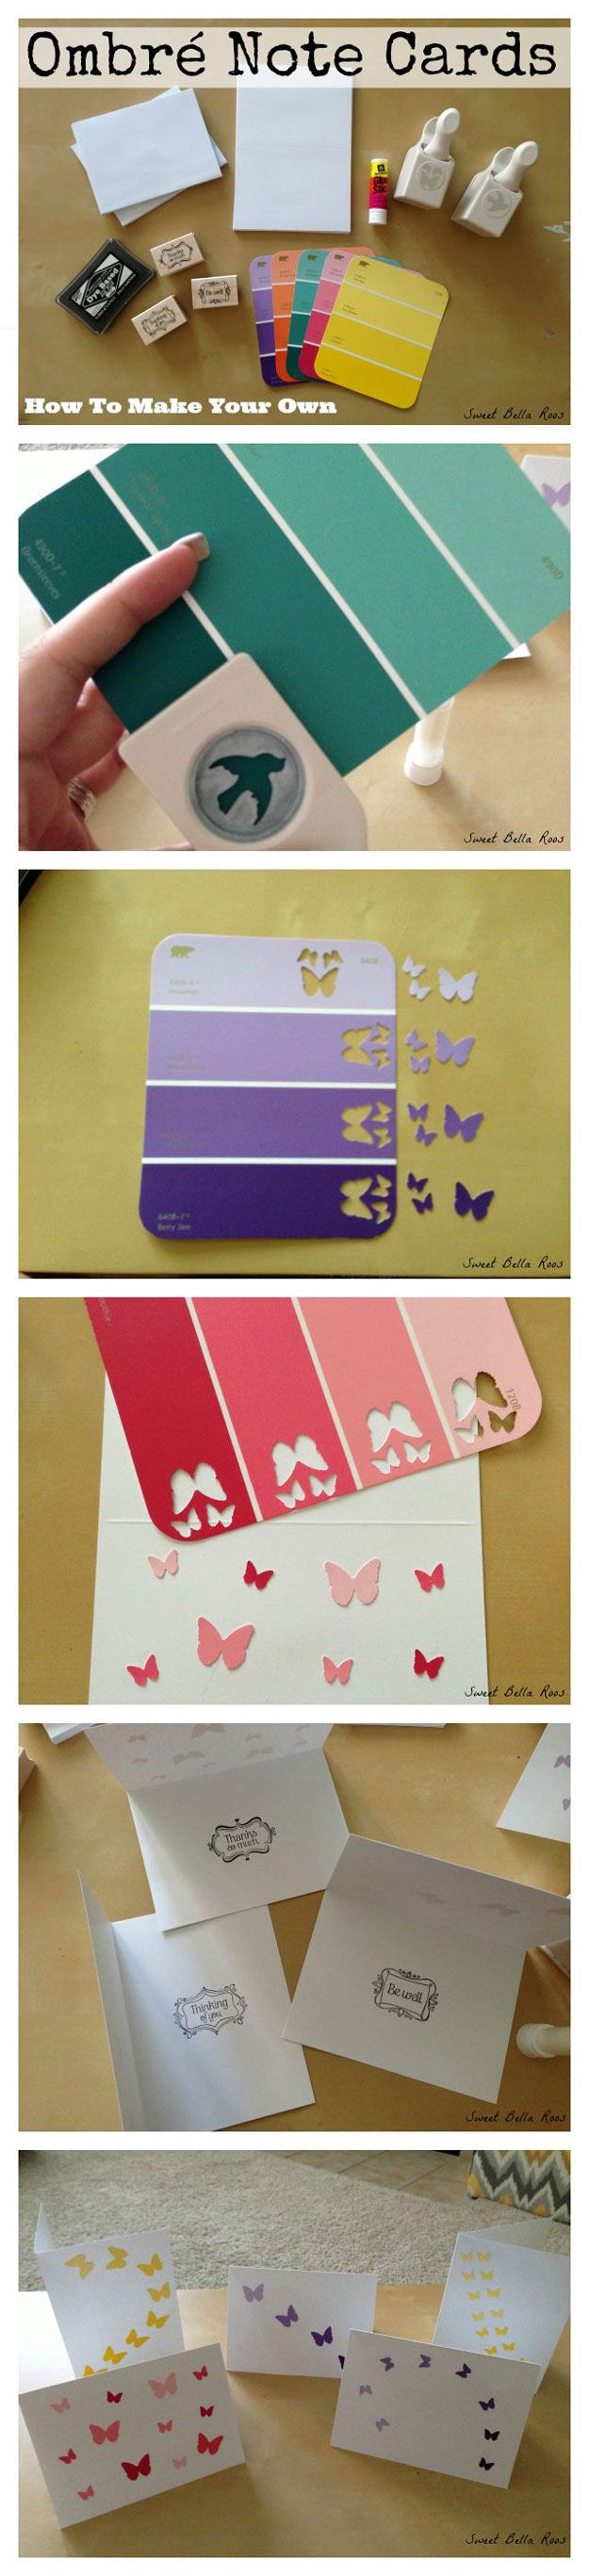 33 creative scrapbook ideas every crafter should know paint chips ombre and scrapbook